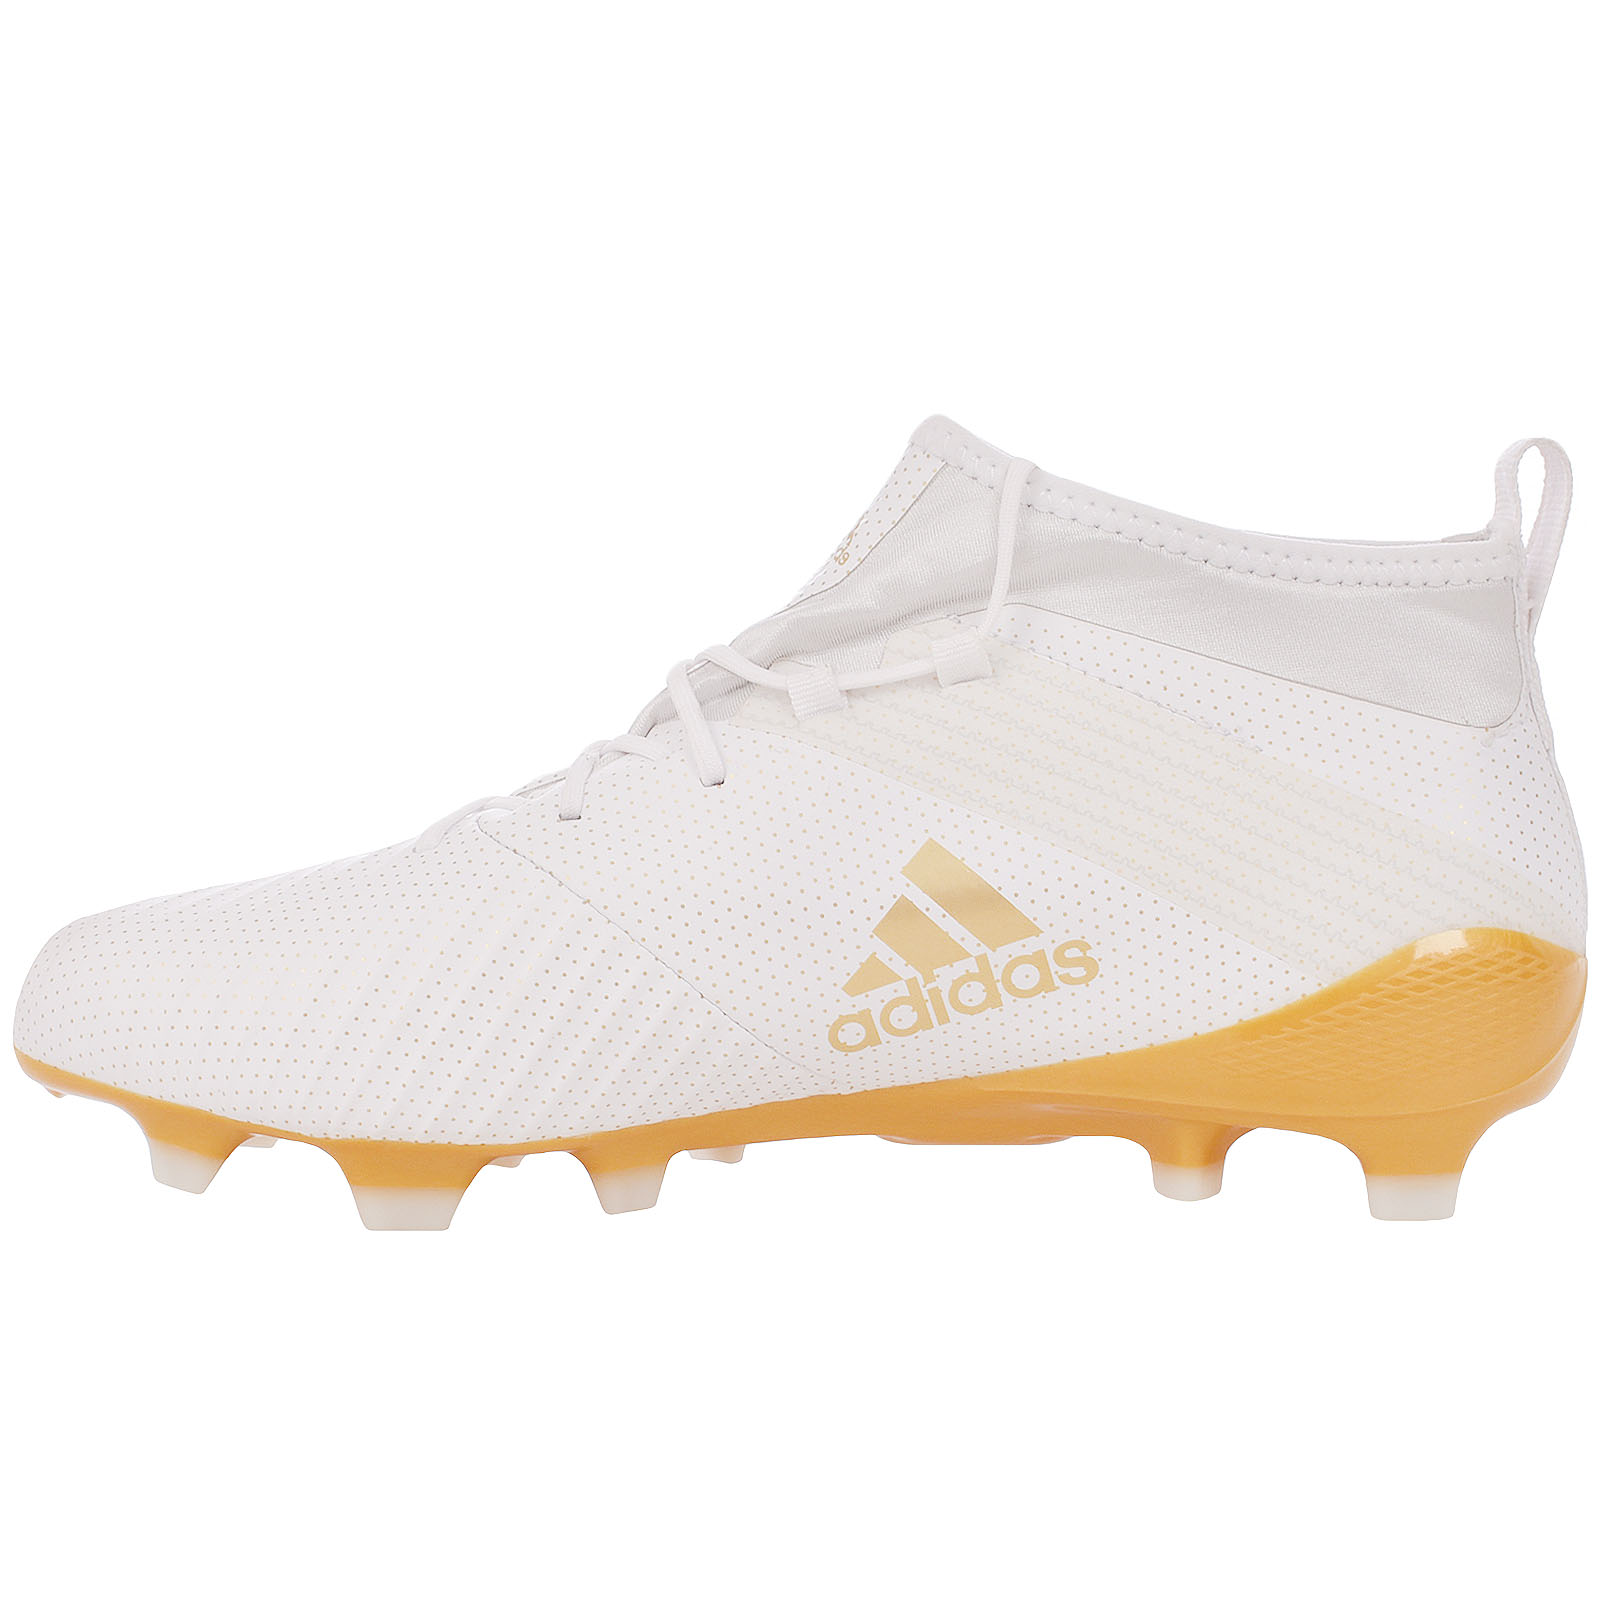 0a234fa43746 adidas Performance Mens Predator Flare FG Sports Training Rugby ...